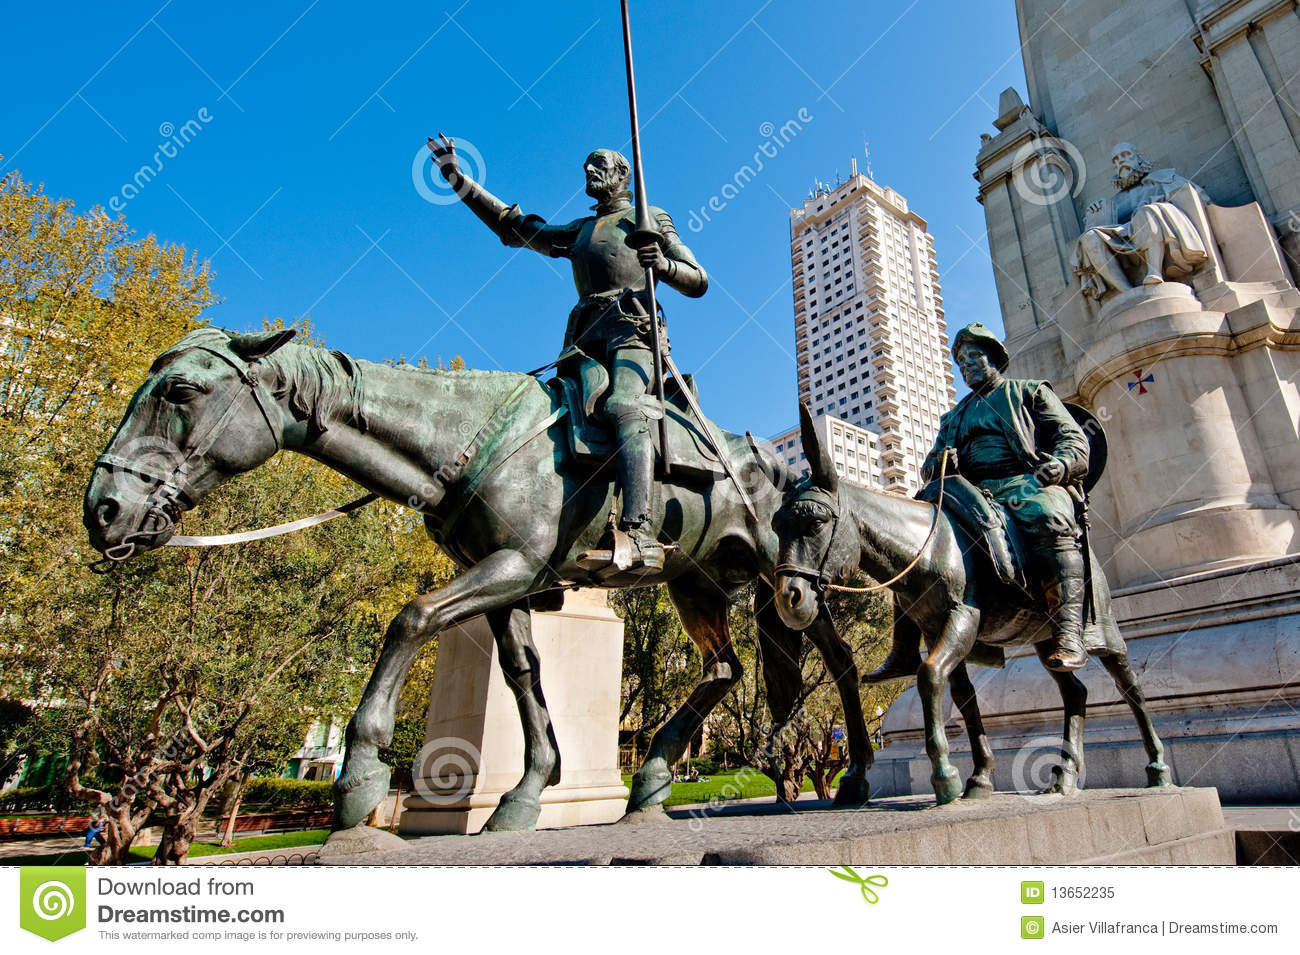 Statues of Don Quixote and Sancho Panza and their writer Cervantes, in